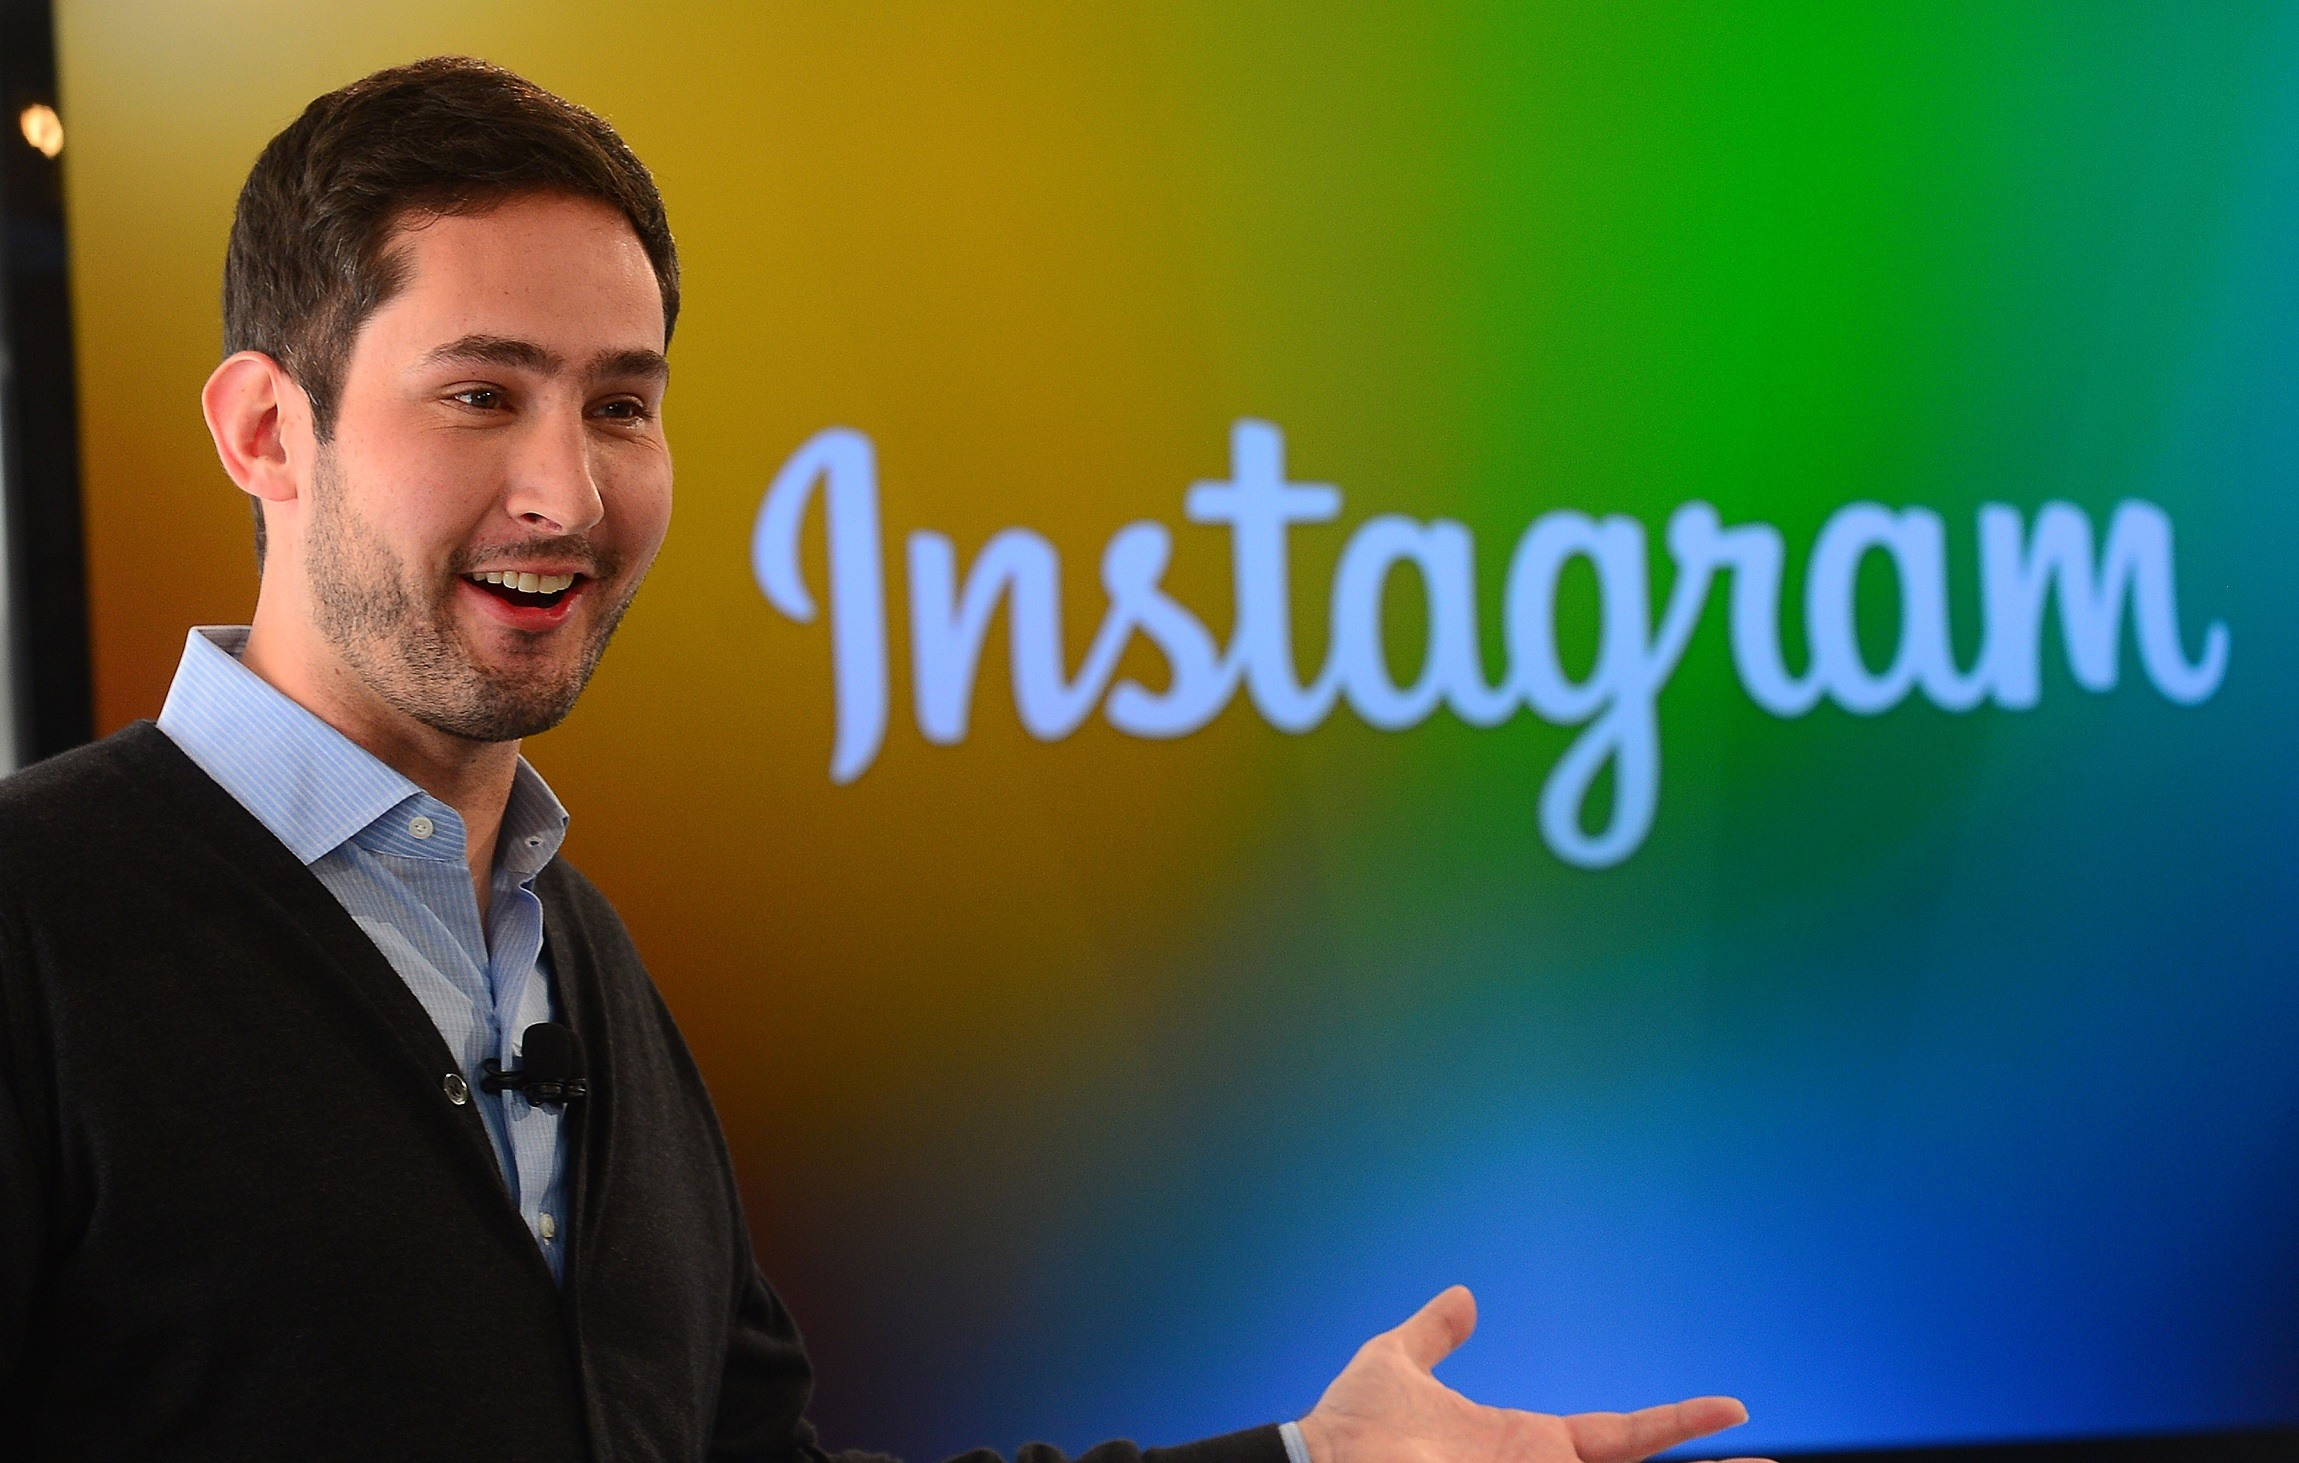 Kevin Systrom changed Burbn to Instagram